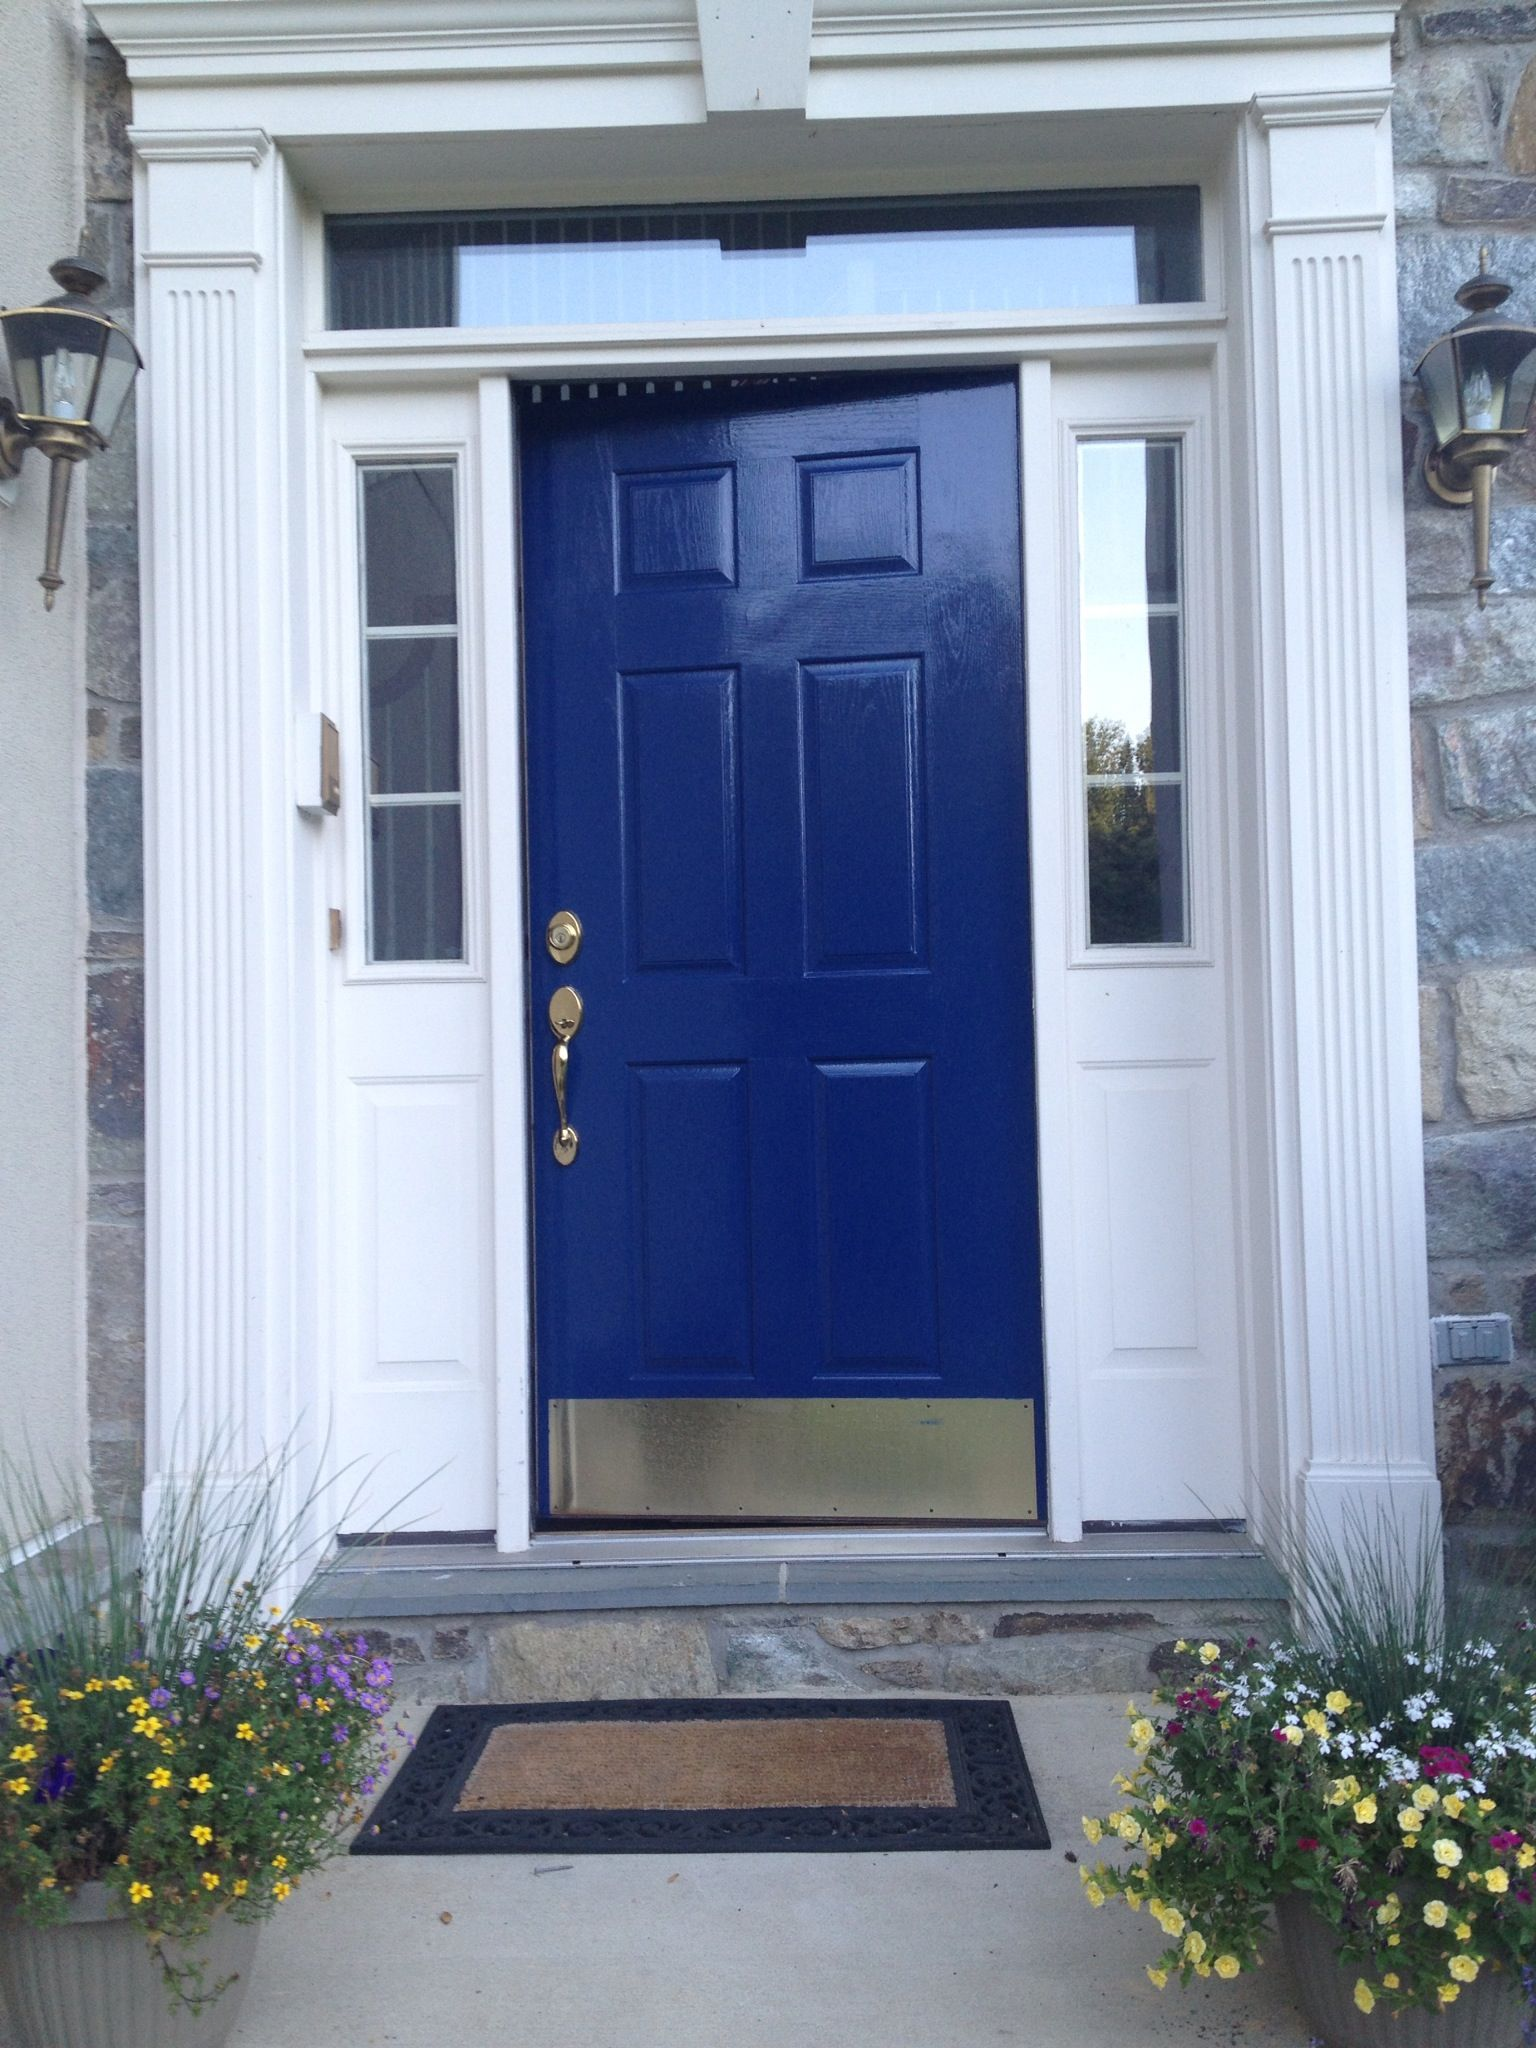 Used Glidden Trim And Door It S A Gel Flow Technology Paint Left No Brush Marks Is Super Glossy Took About Nine Hours For Two Coats